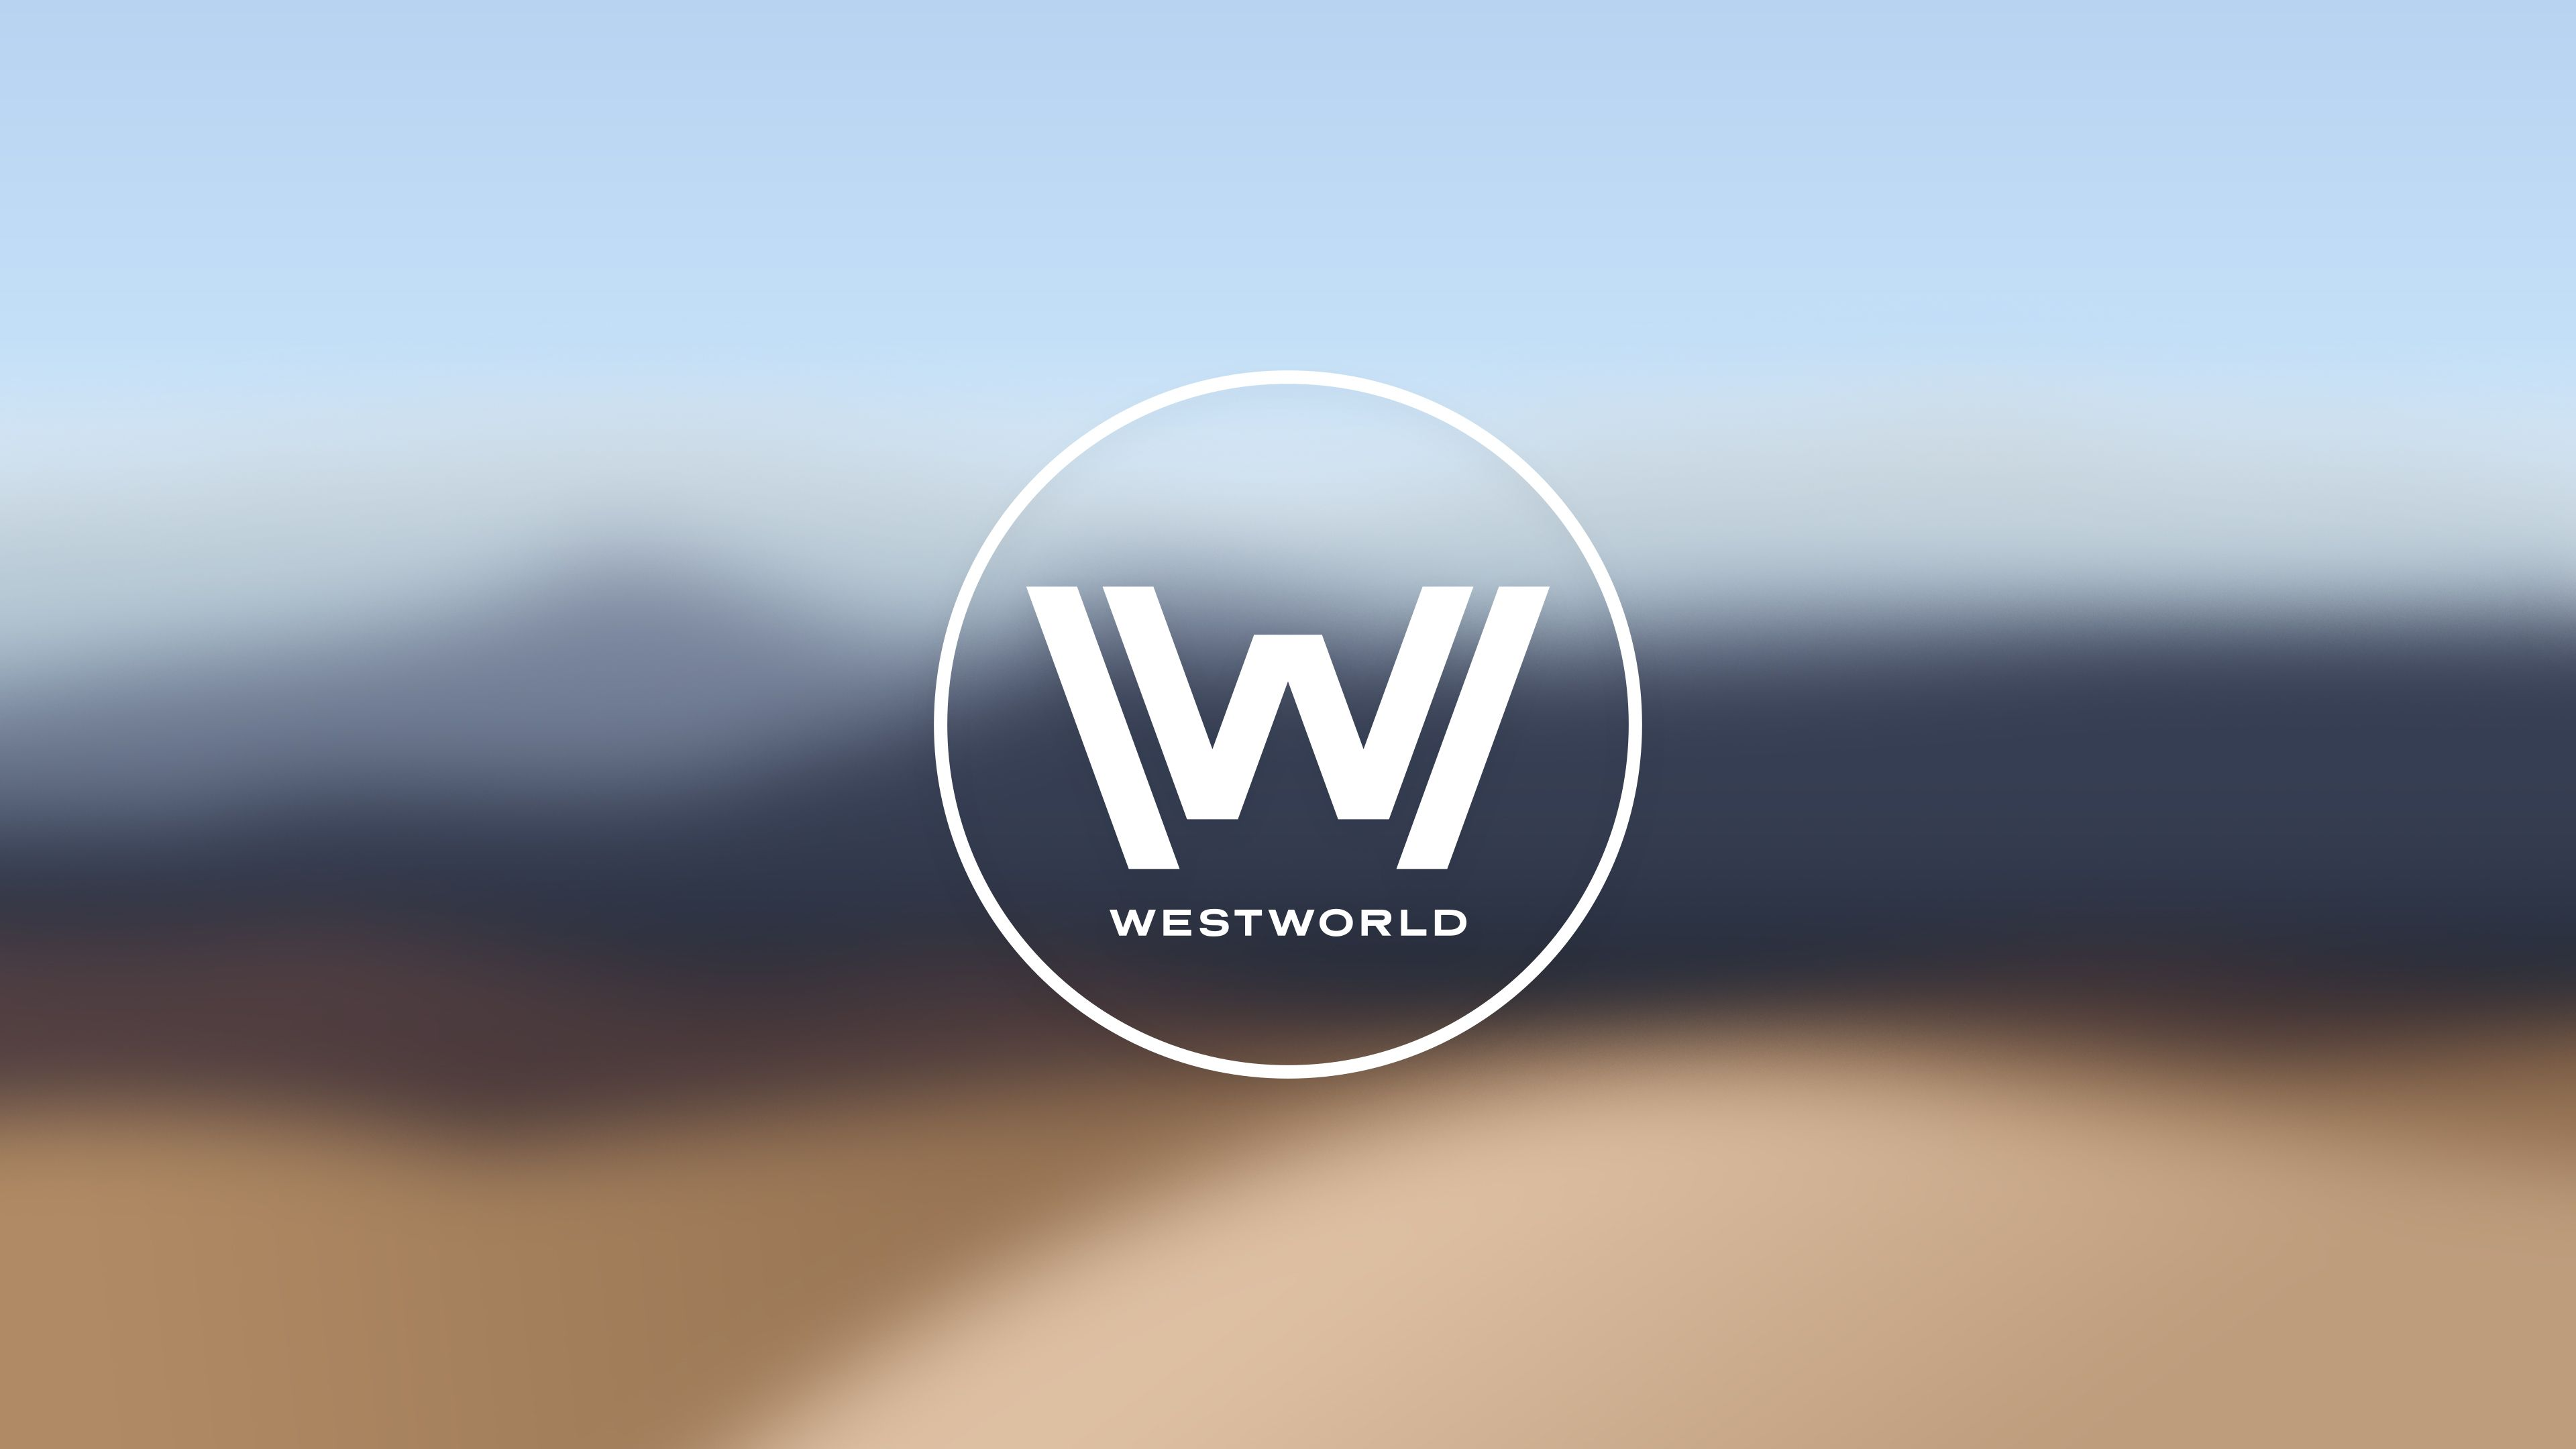 Westworld Logo 4k Nj Ultra Hd Wallpaper 2018 Westworld Wallpaper Background Images